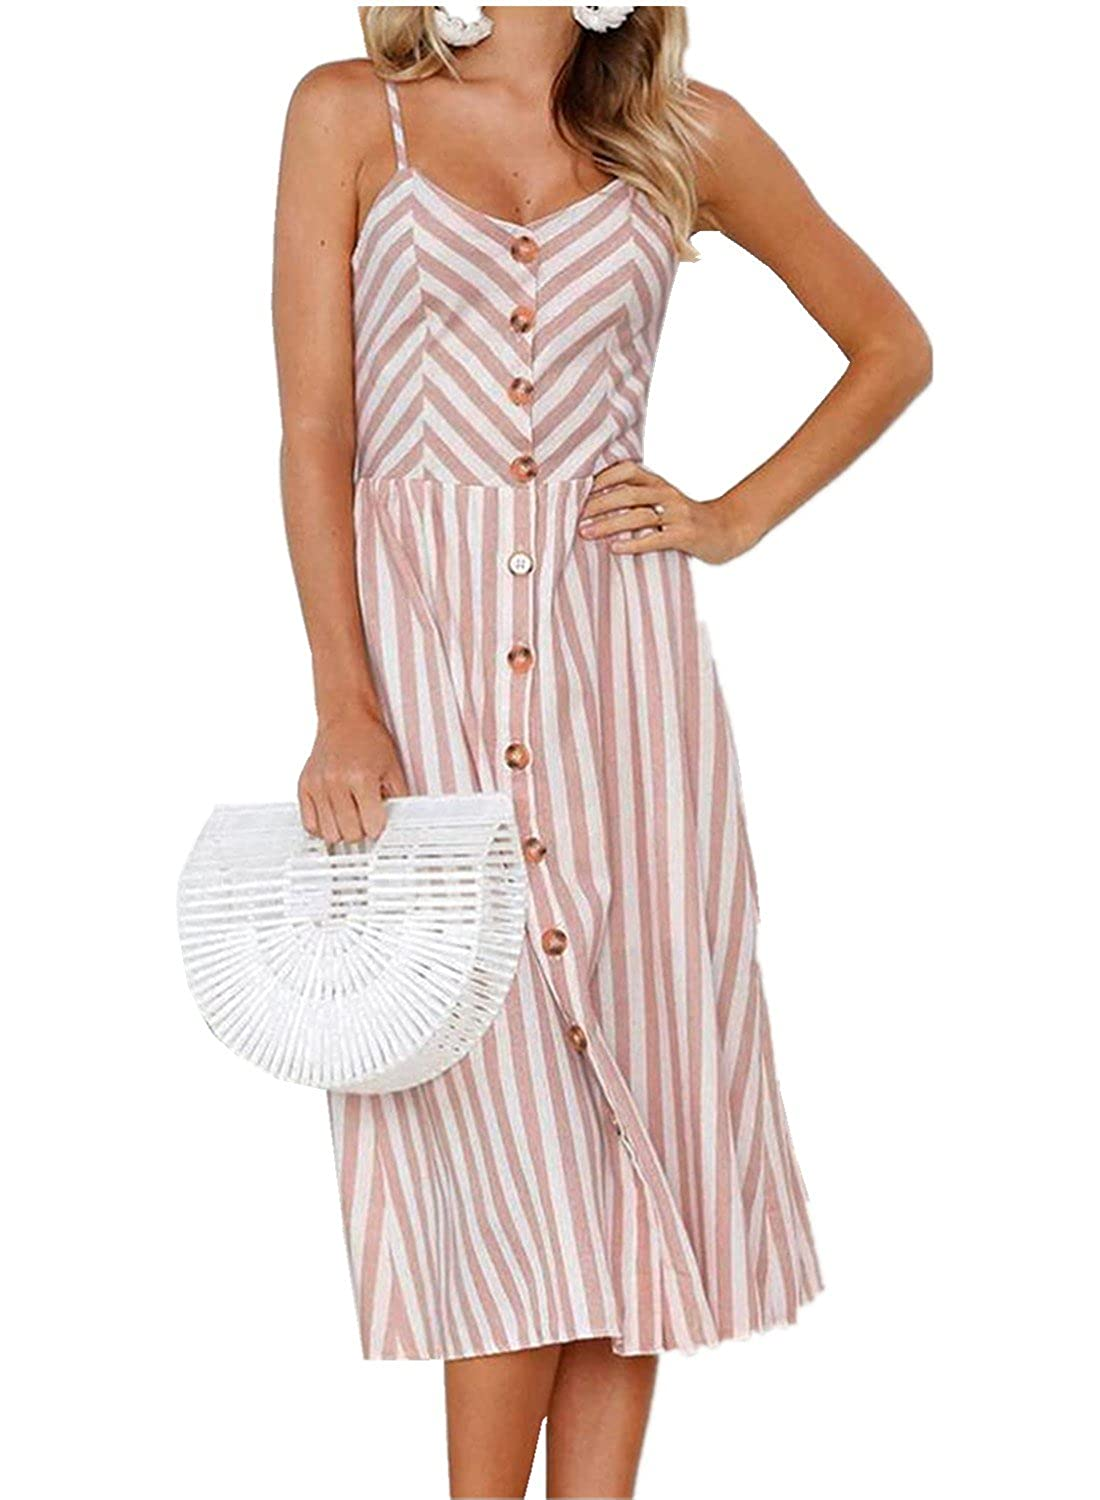 0c663398eb4 Sunward 2018 Womens Spaghetti Strap Summer Beach Sundresses